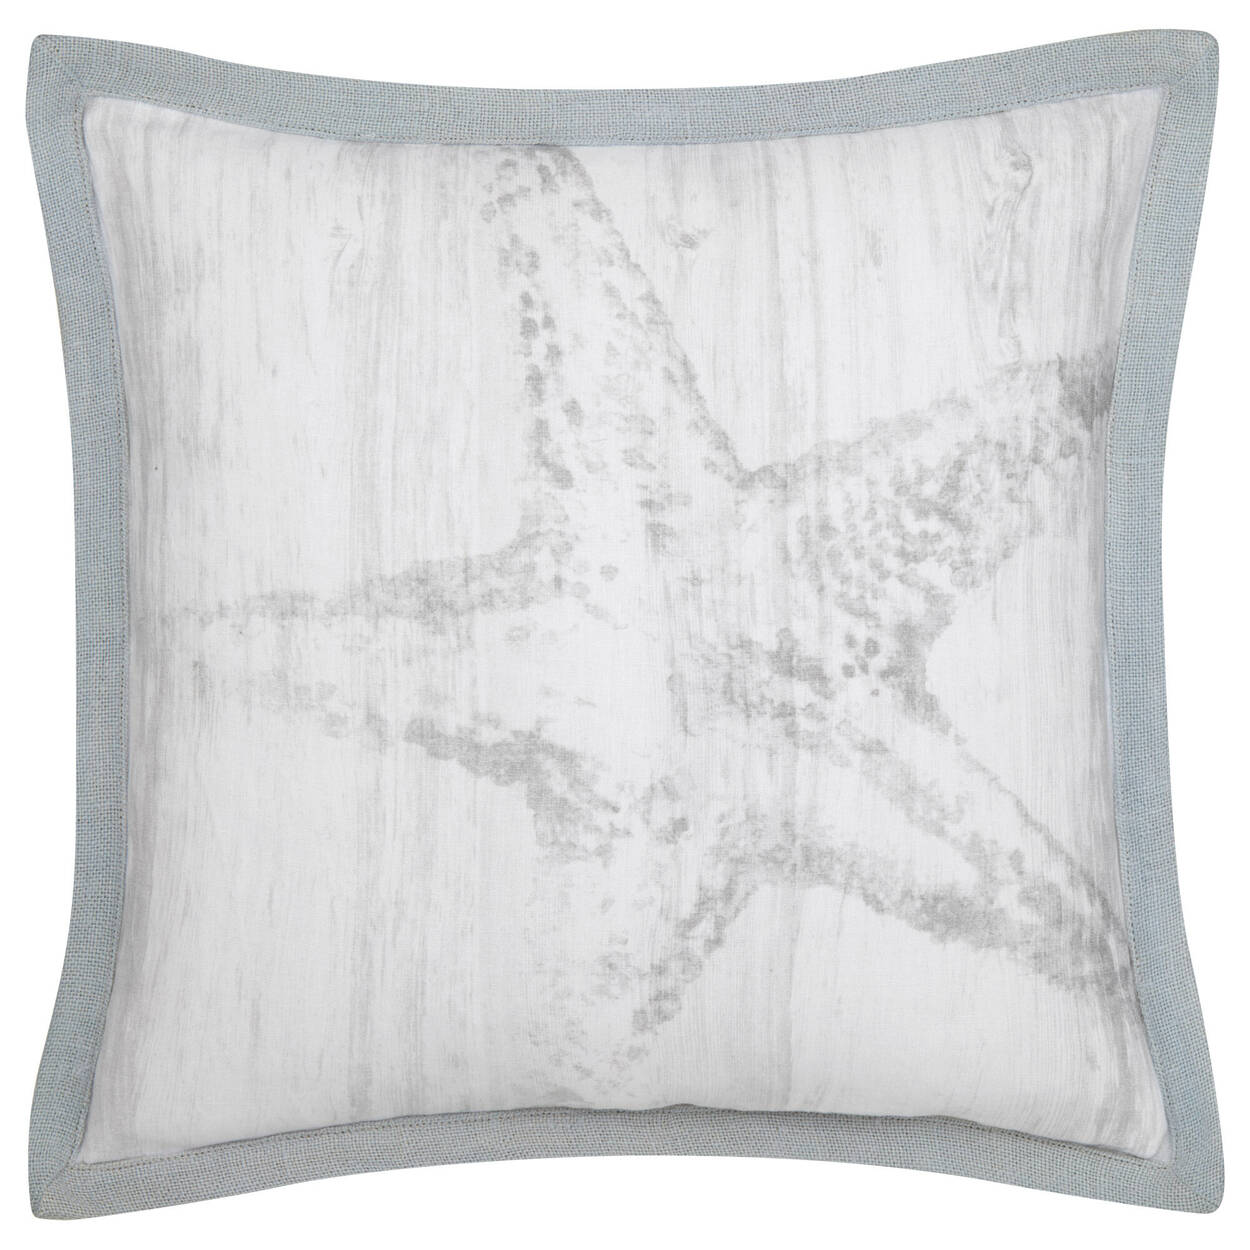 "Atola Decorative Pillow 21"" X 21"""